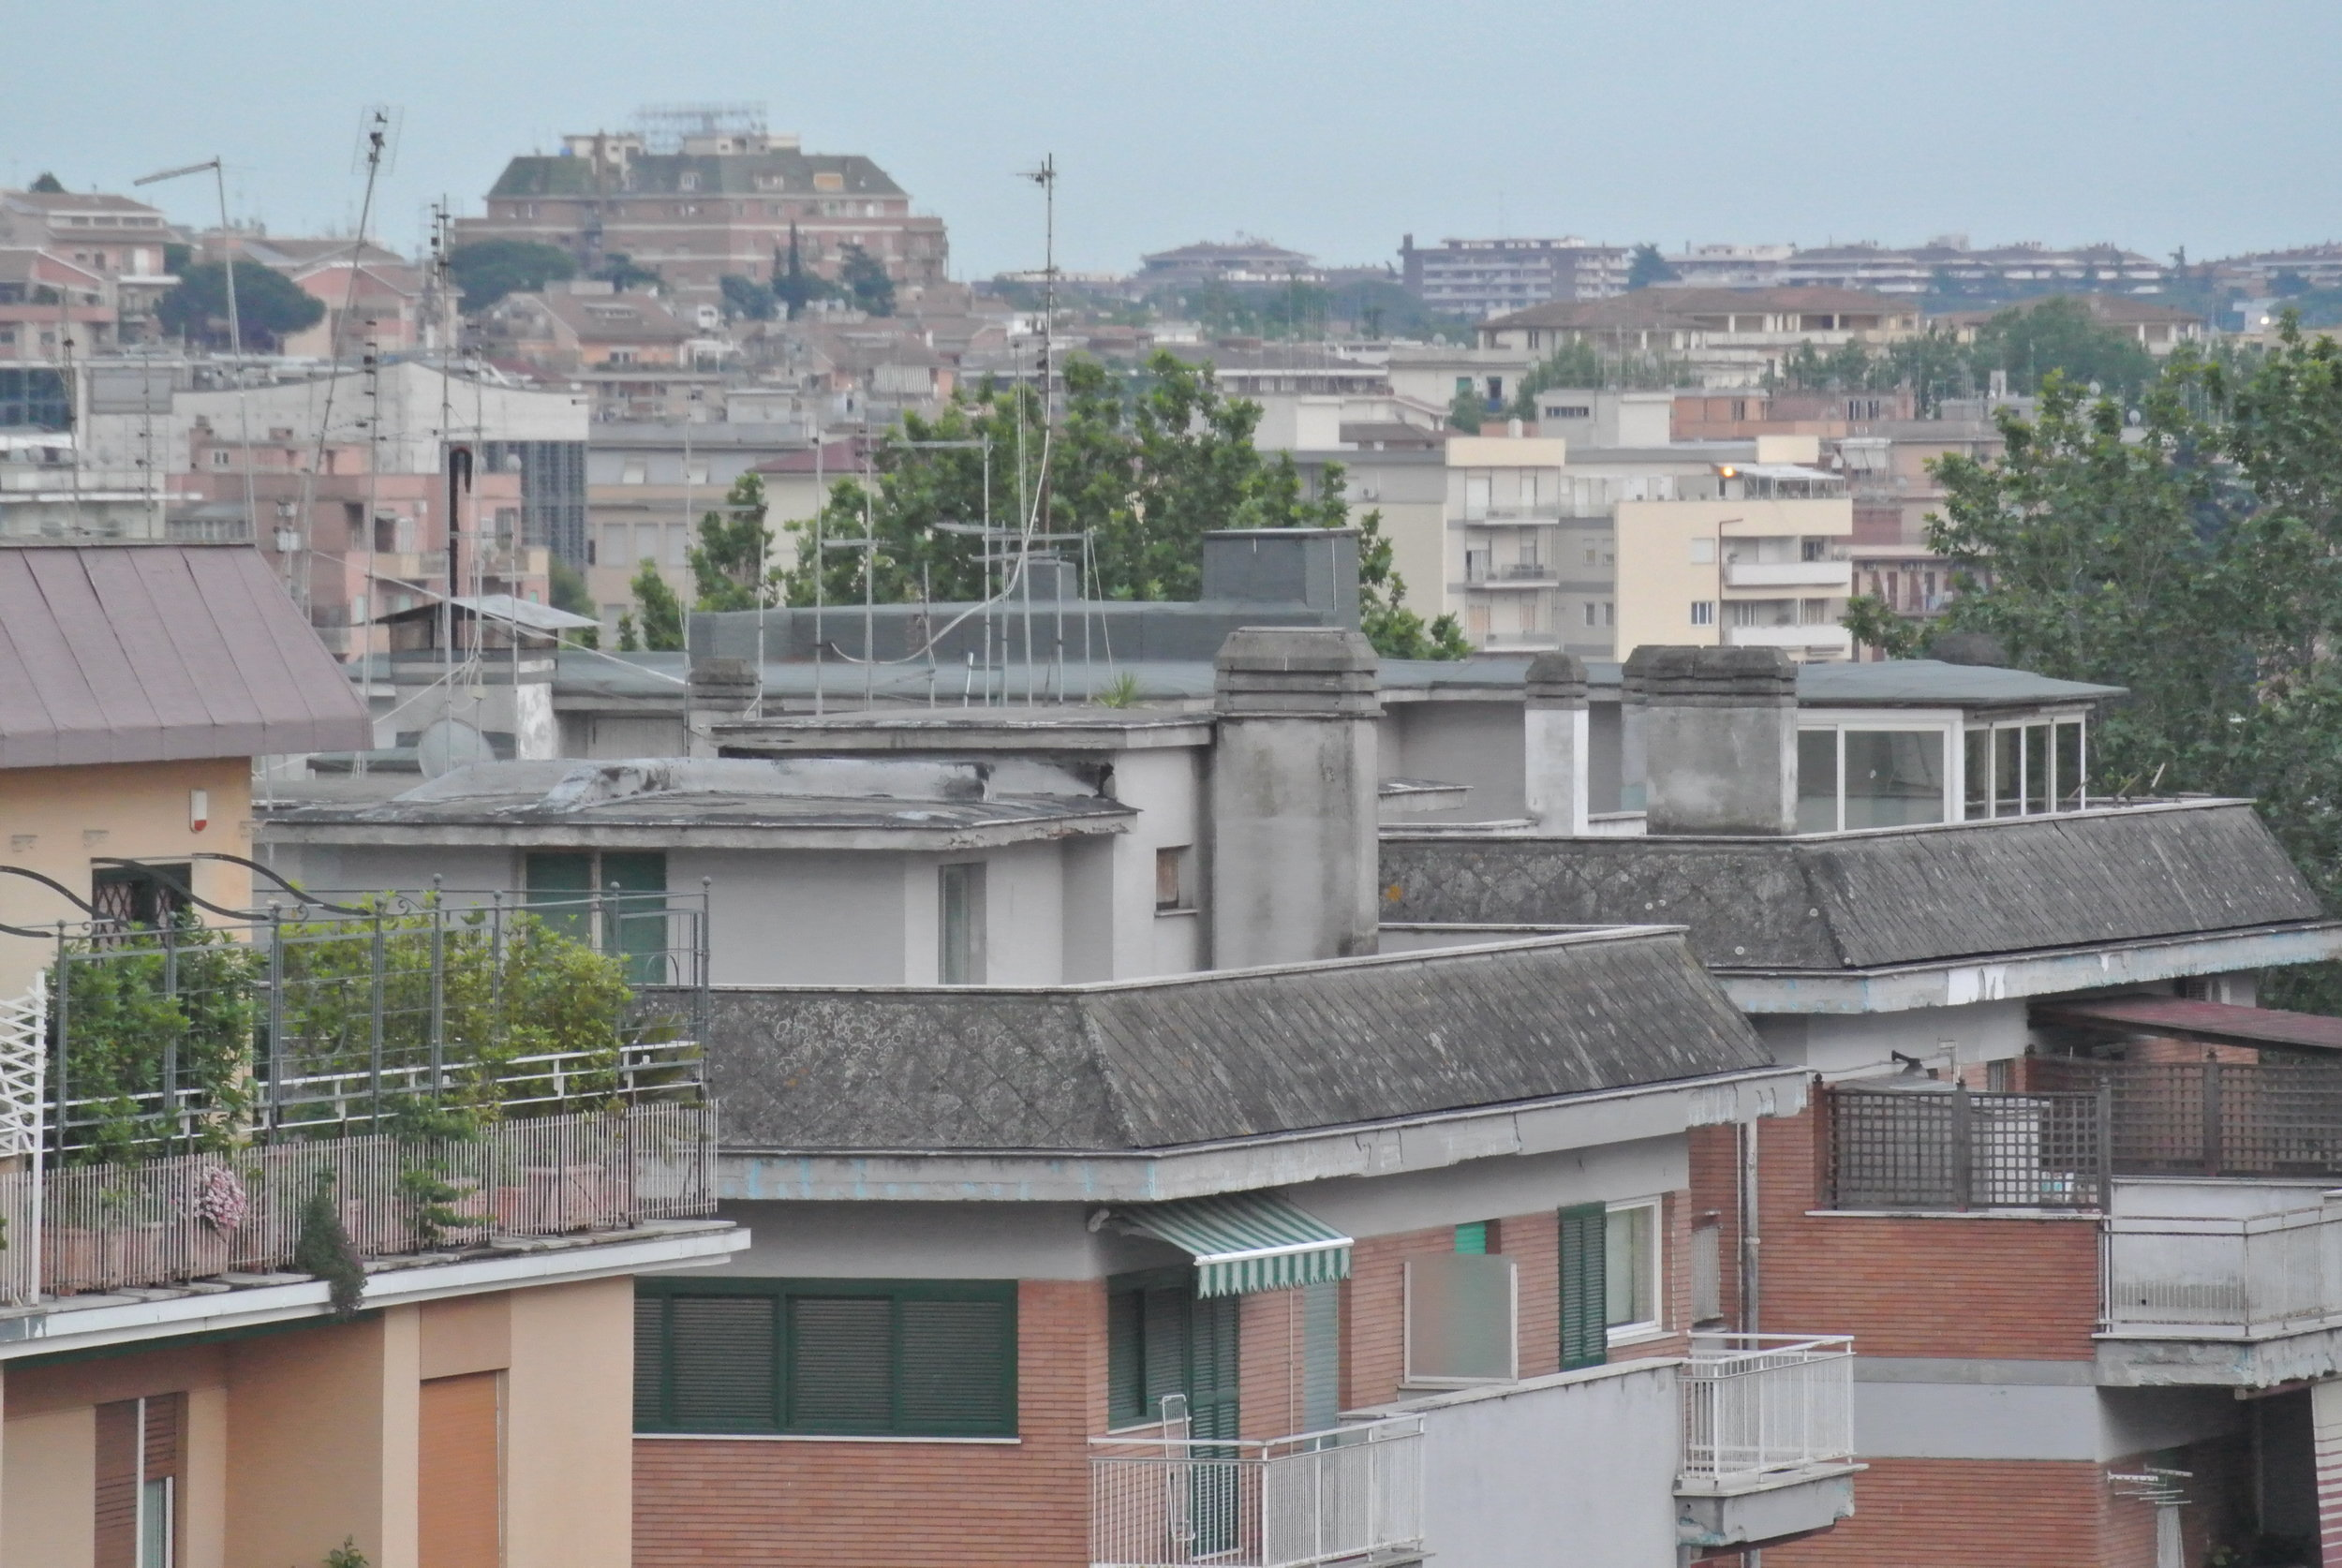 Spaceship Parking: rooftops ready for liftoff. Rome, Portuense; May 2018. ©Pamela Kerpius